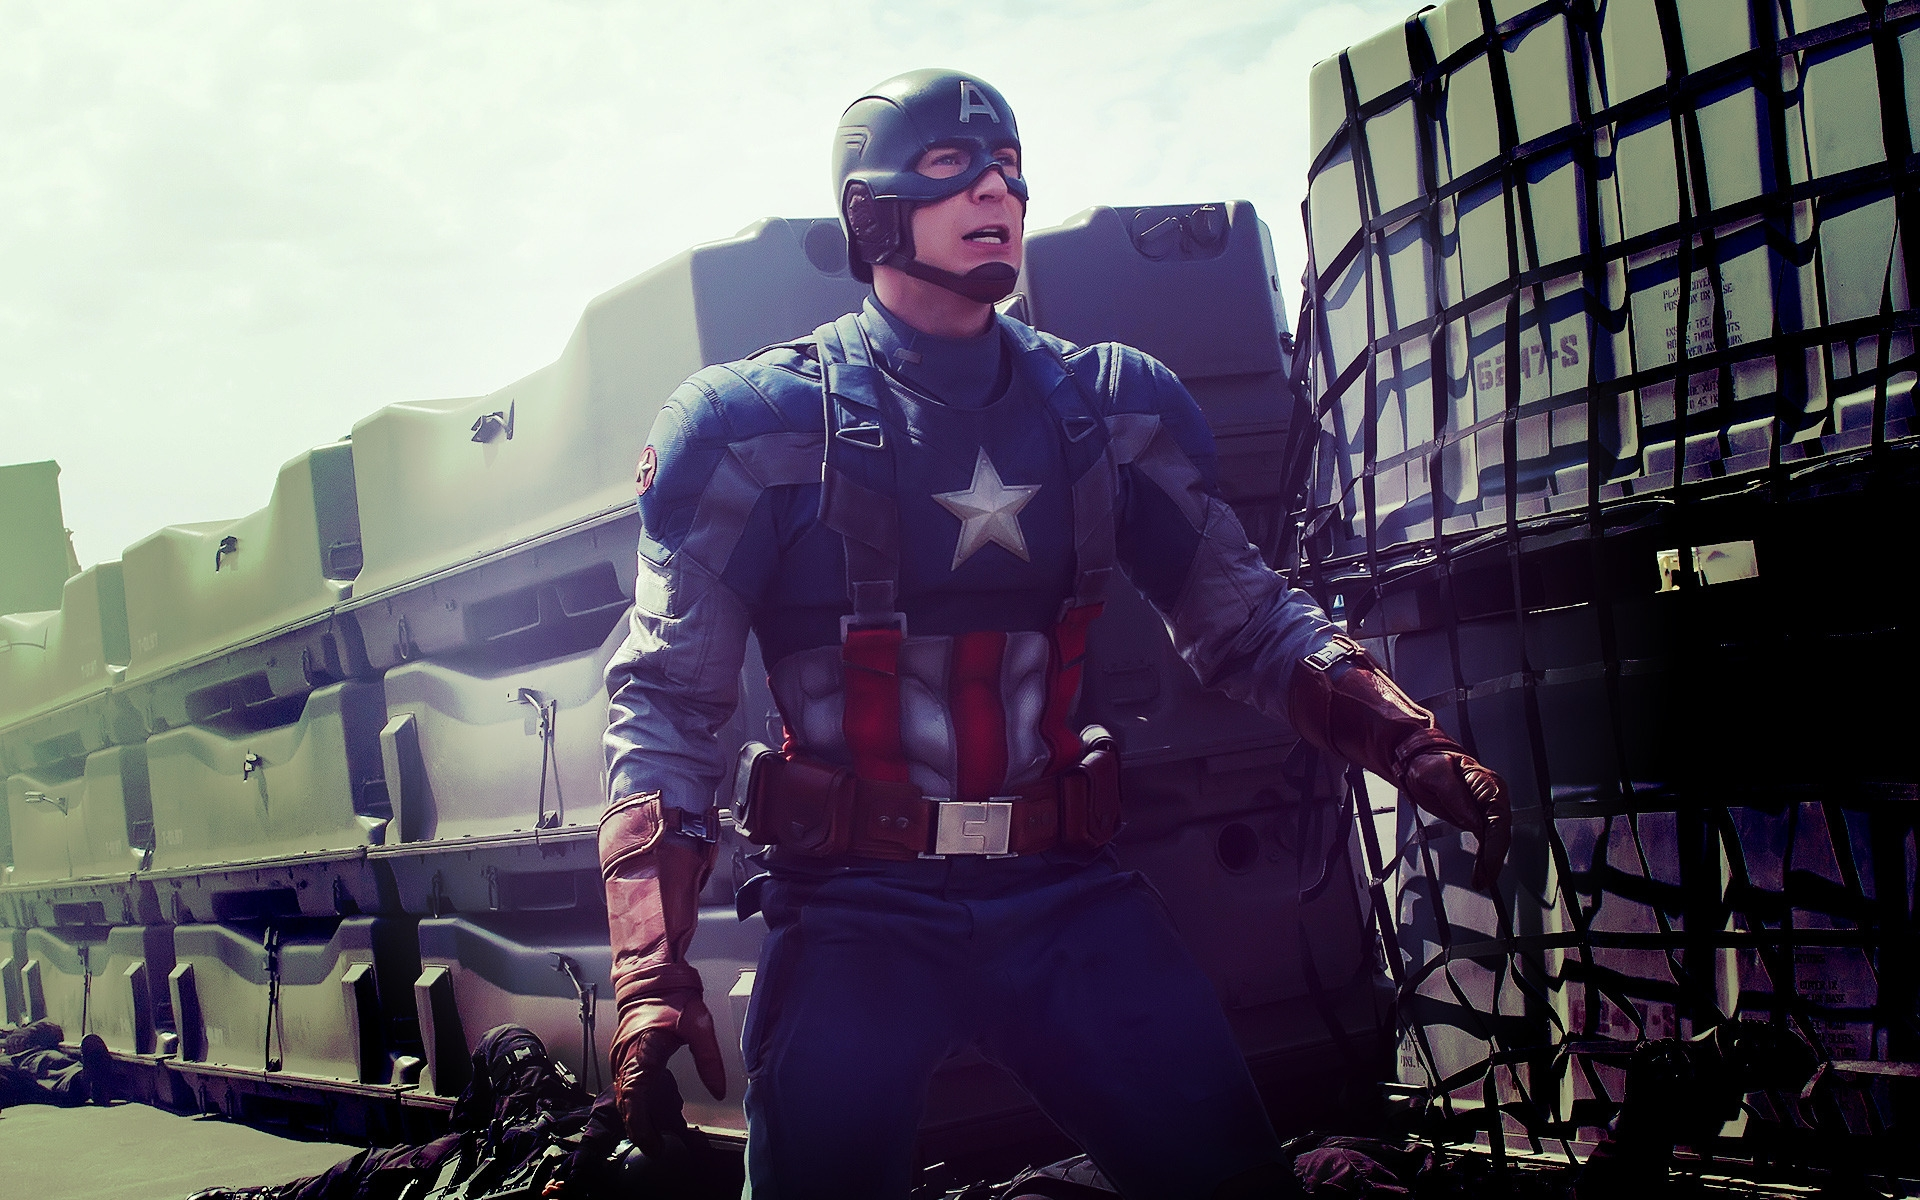 Captain America in Action for 1920 x 1200 widescreen resolution